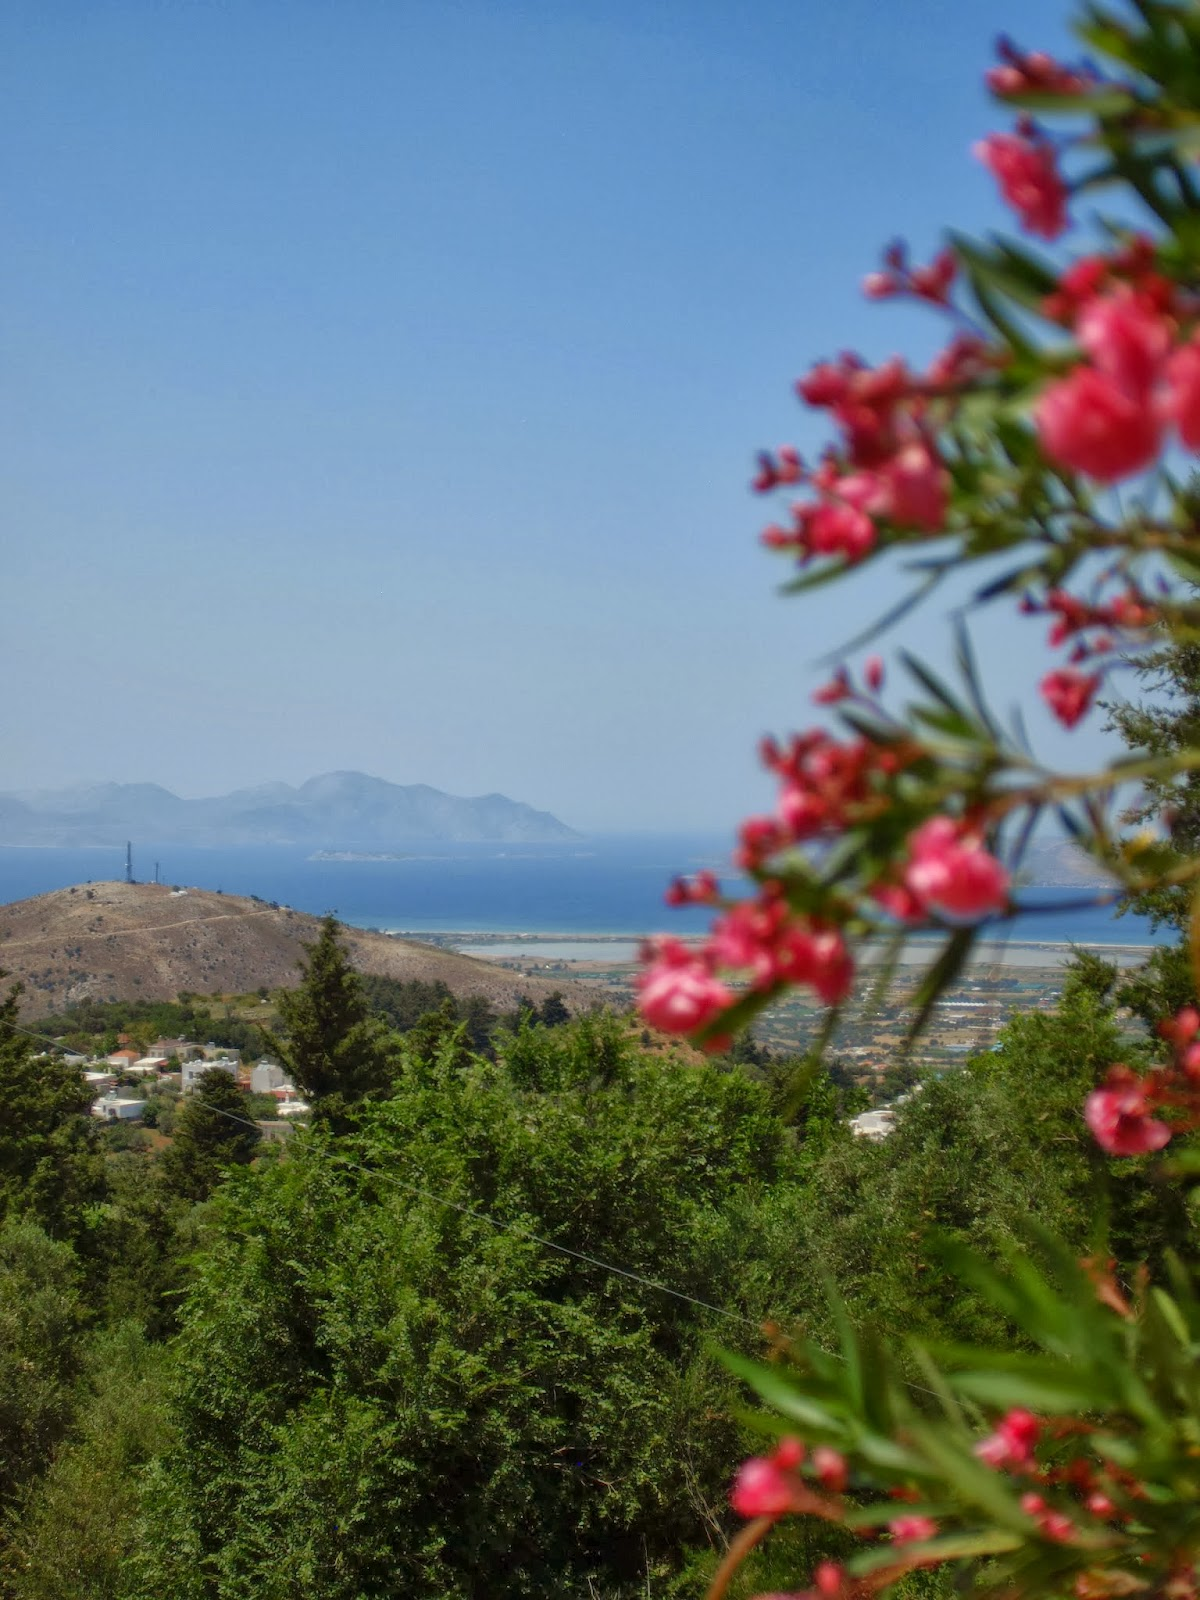 view to asia, view from greece to turkey, view from europe to asia, Kos, Greece, Europe, traditional church, view, mountain, zia, lambi, kos town, beautiful view, travel, travelling,